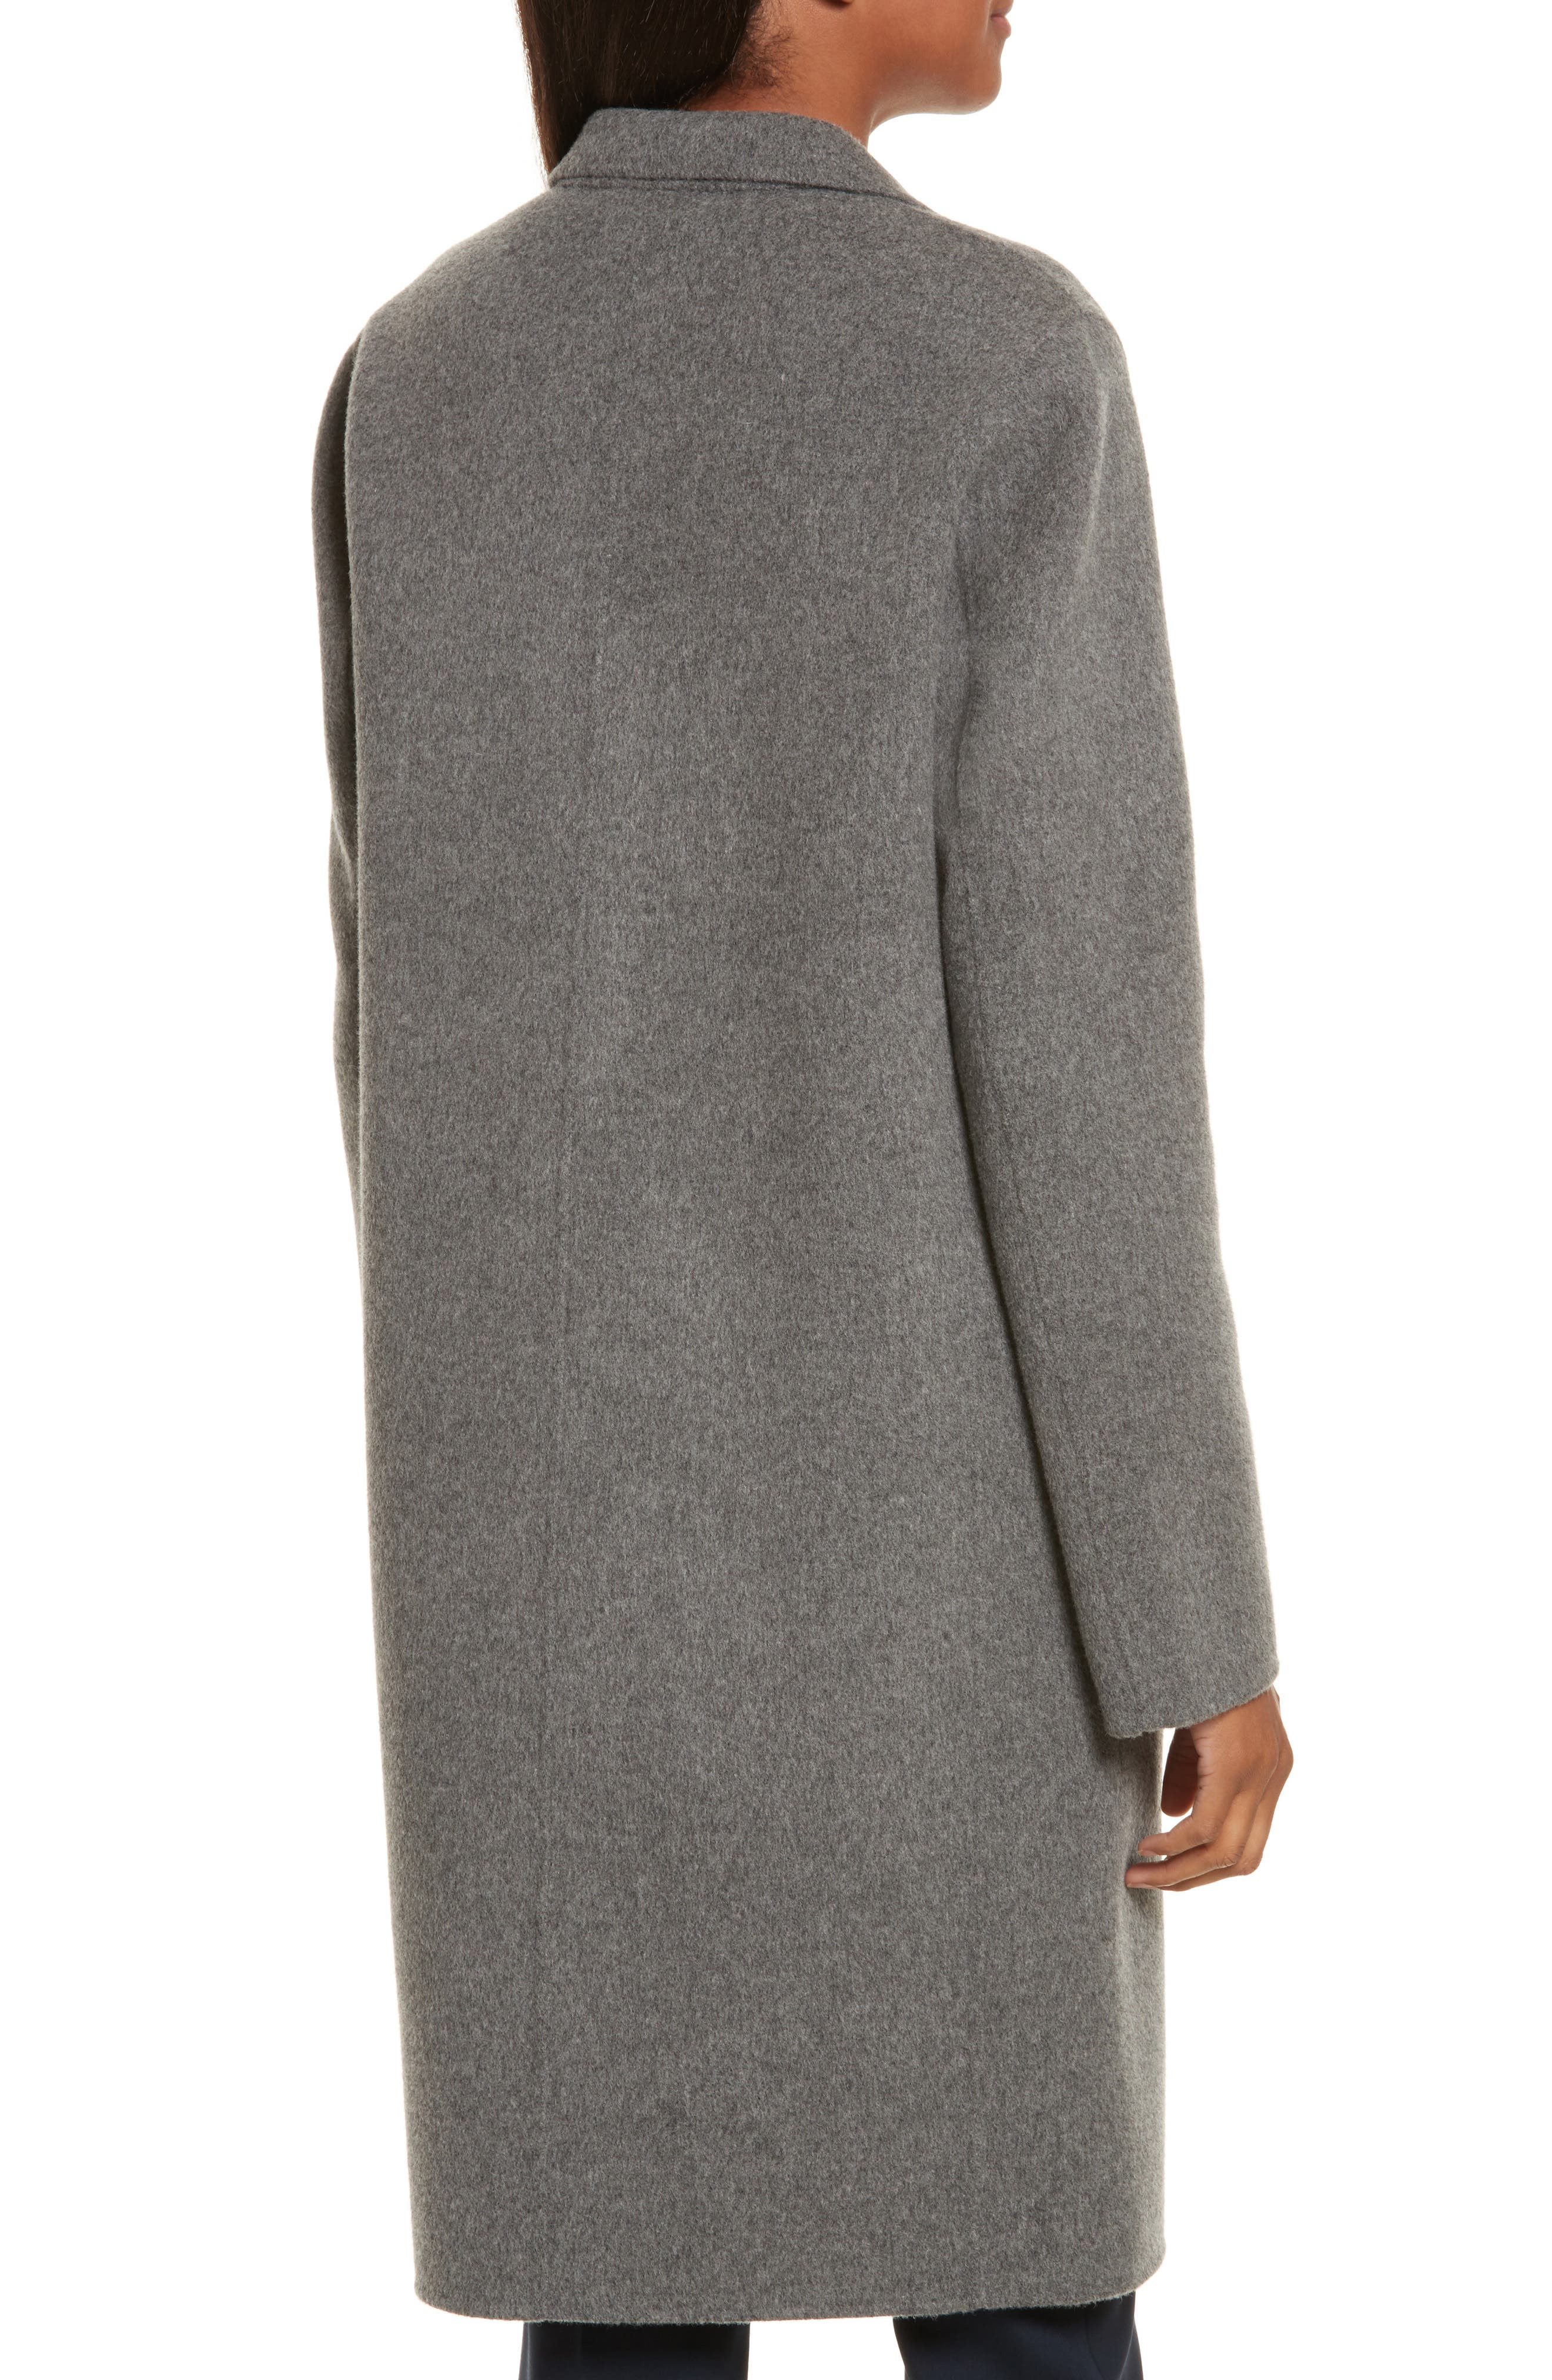 New Divide Wool & Cashmere Coat,                             Alternate thumbnail 2, color,                             021